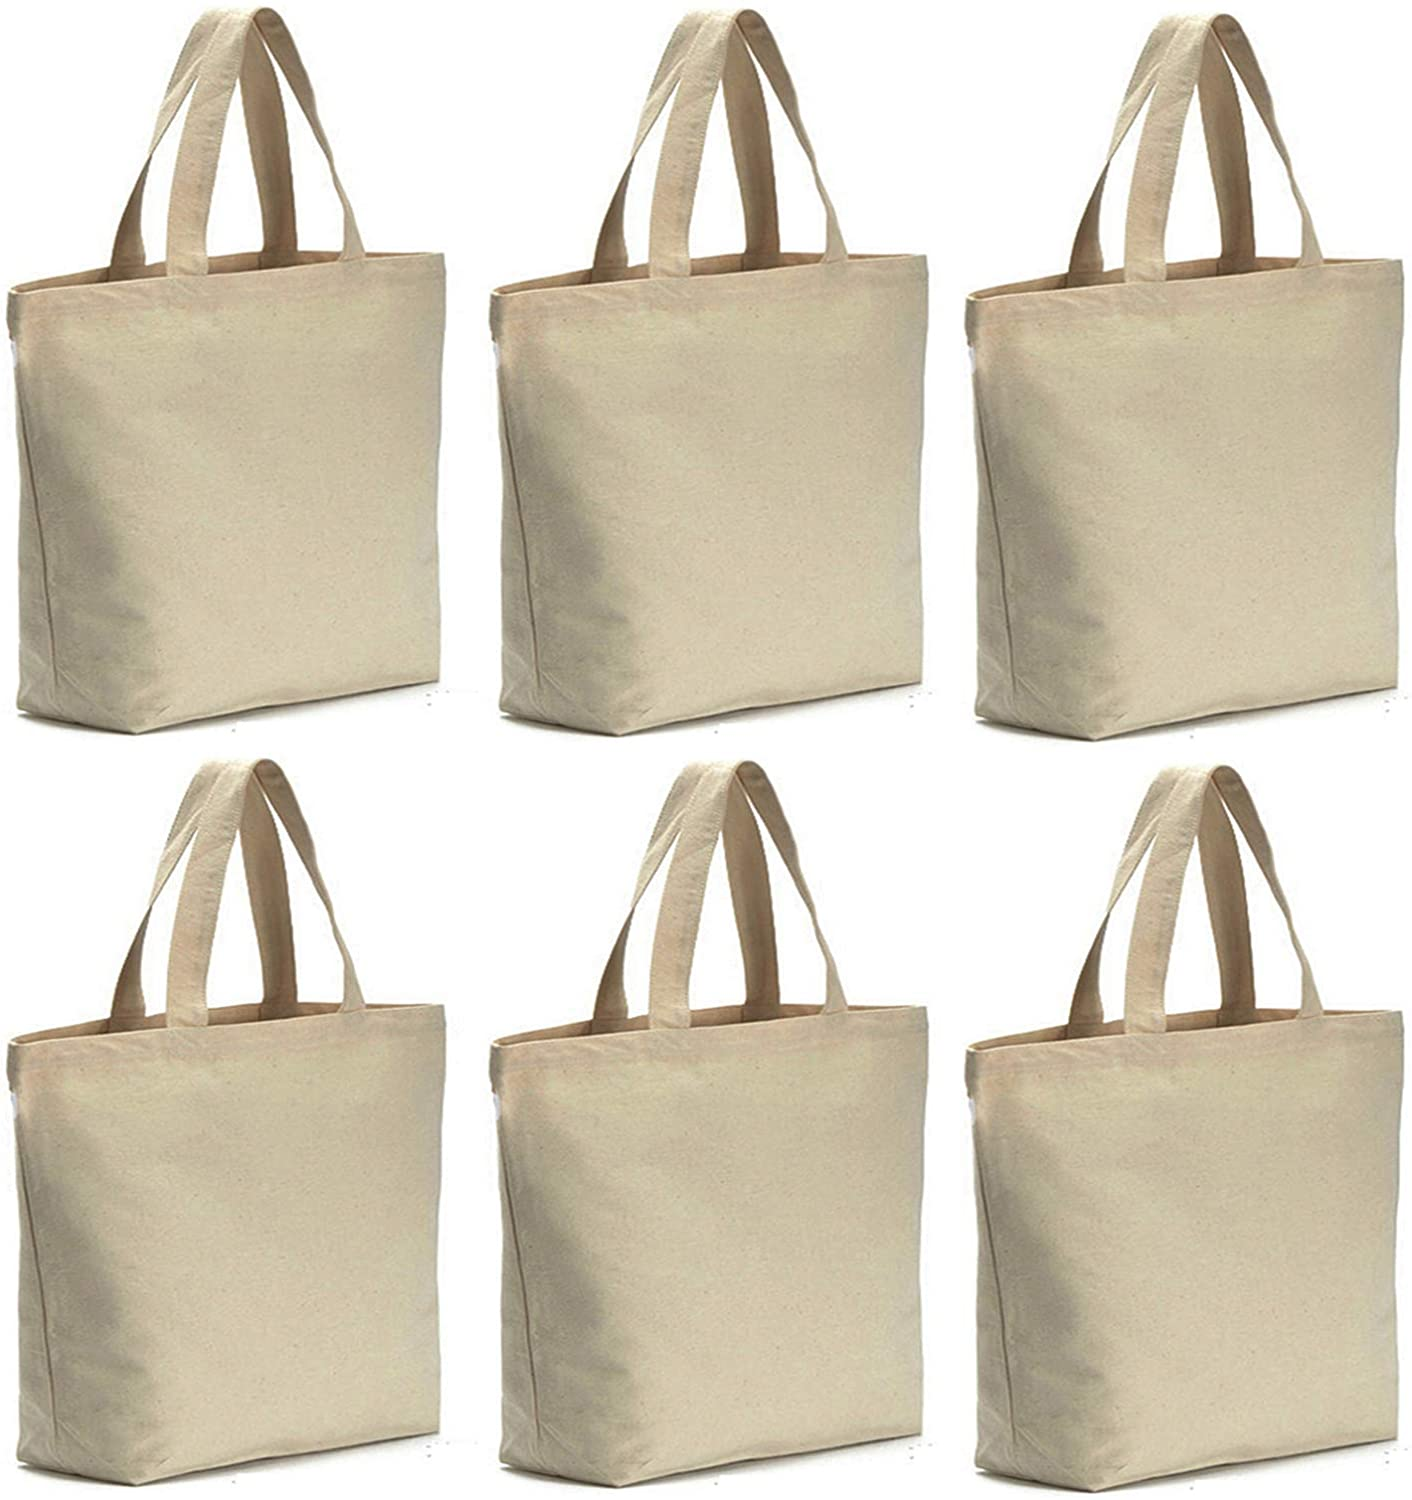 6 Pcs Canvas Tote Bag Washable wi Large-scale sale Bottom Grocery Austin Mall Gusset